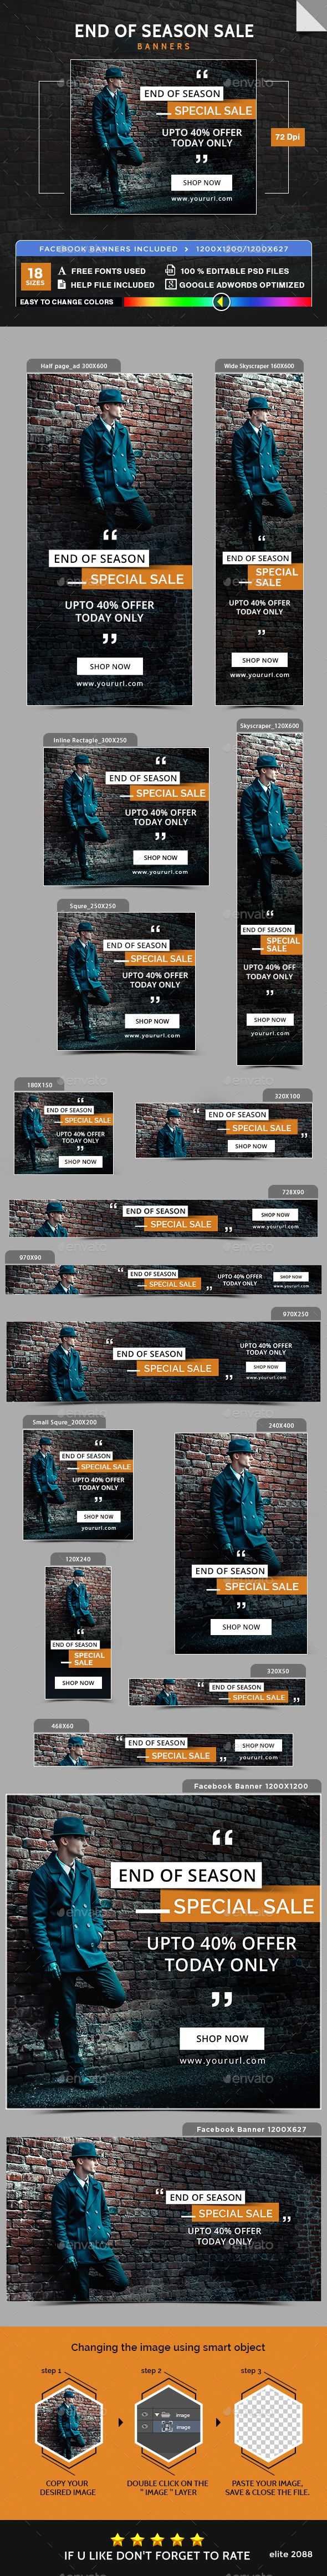 End of Season Sale Banners - Banners & Ads Web Elements Download here : https://graphicriver.net/item/end-of-season-sale-banners/19289033?s_rank=47&ref=Al-fatih